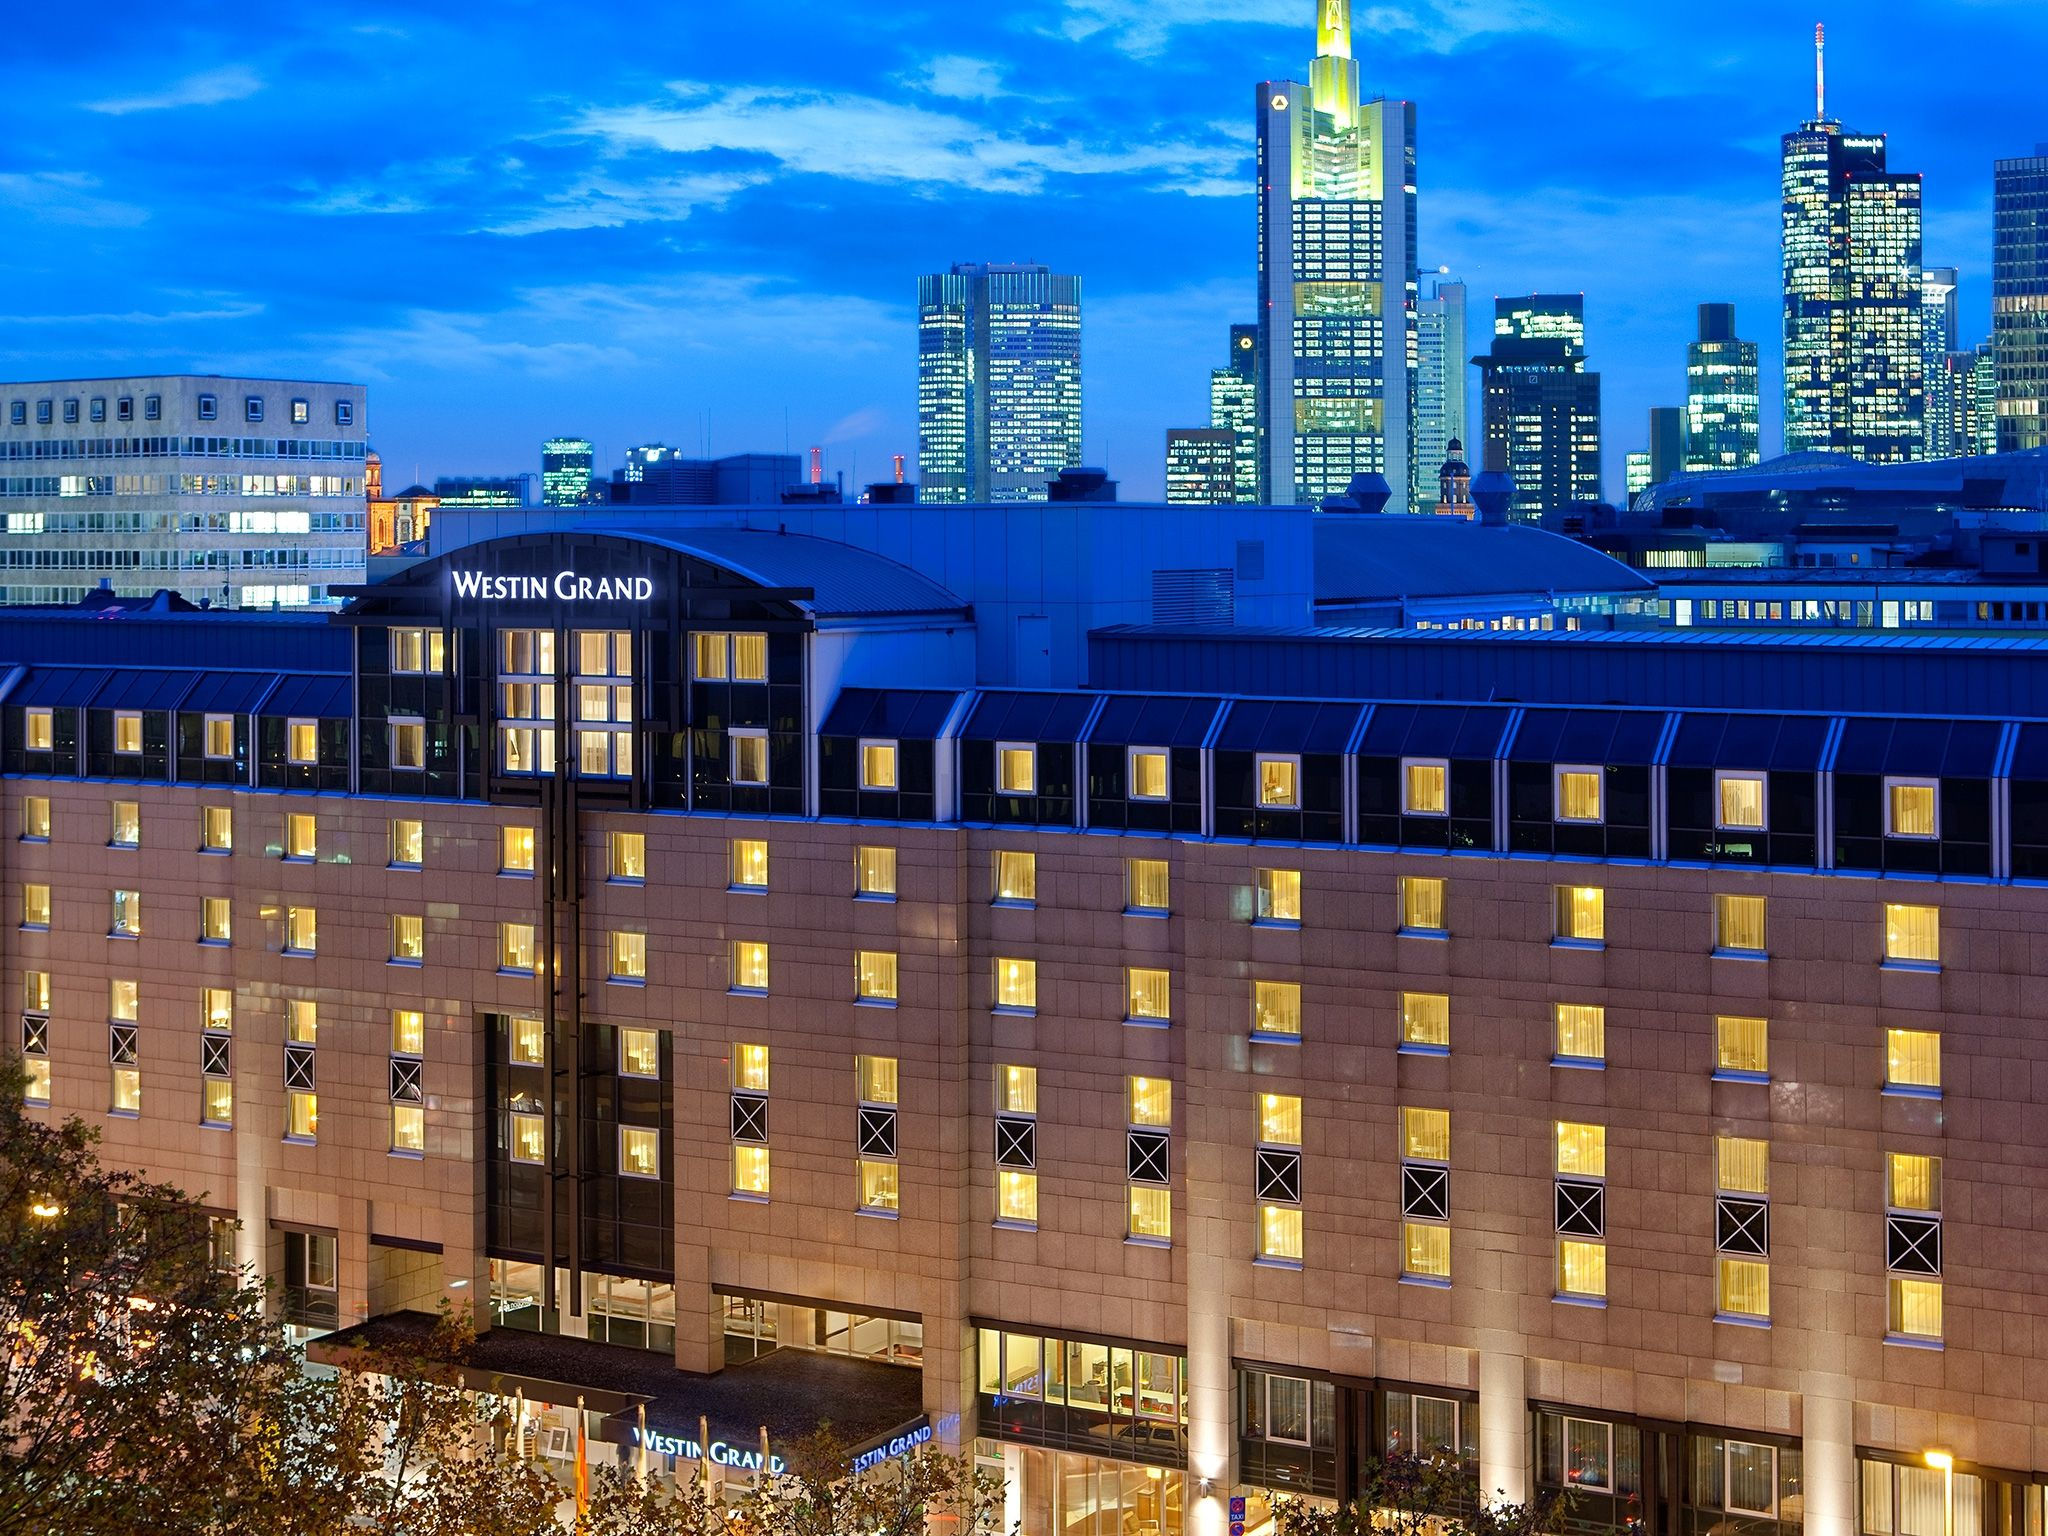 Hotel in Frankfurt: The Westin Grand Frankfurt